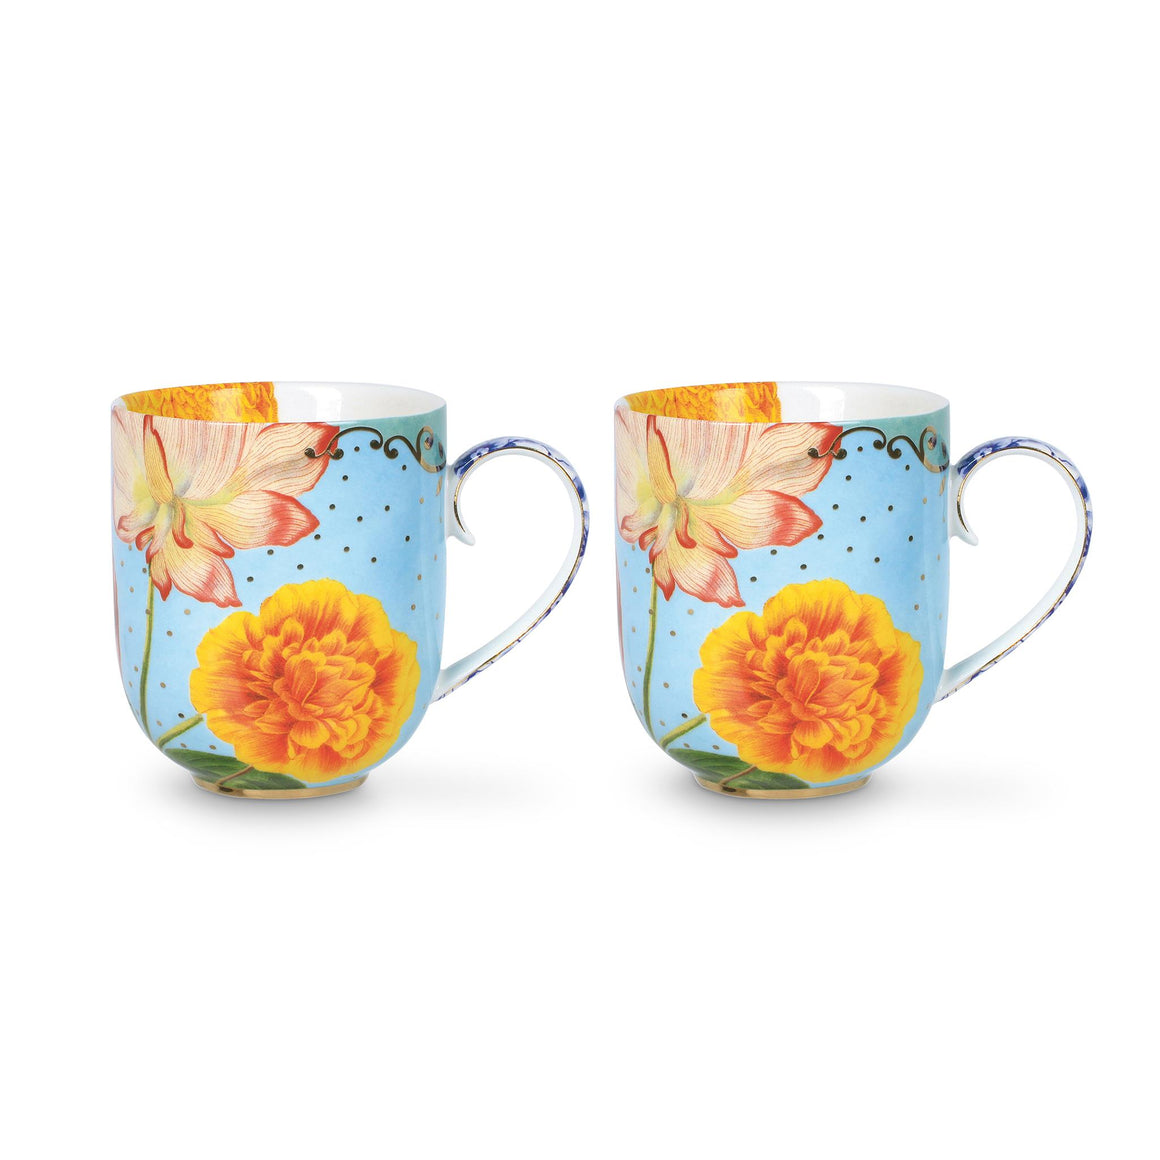 Royal Double Mug Set, Multi-Rhine